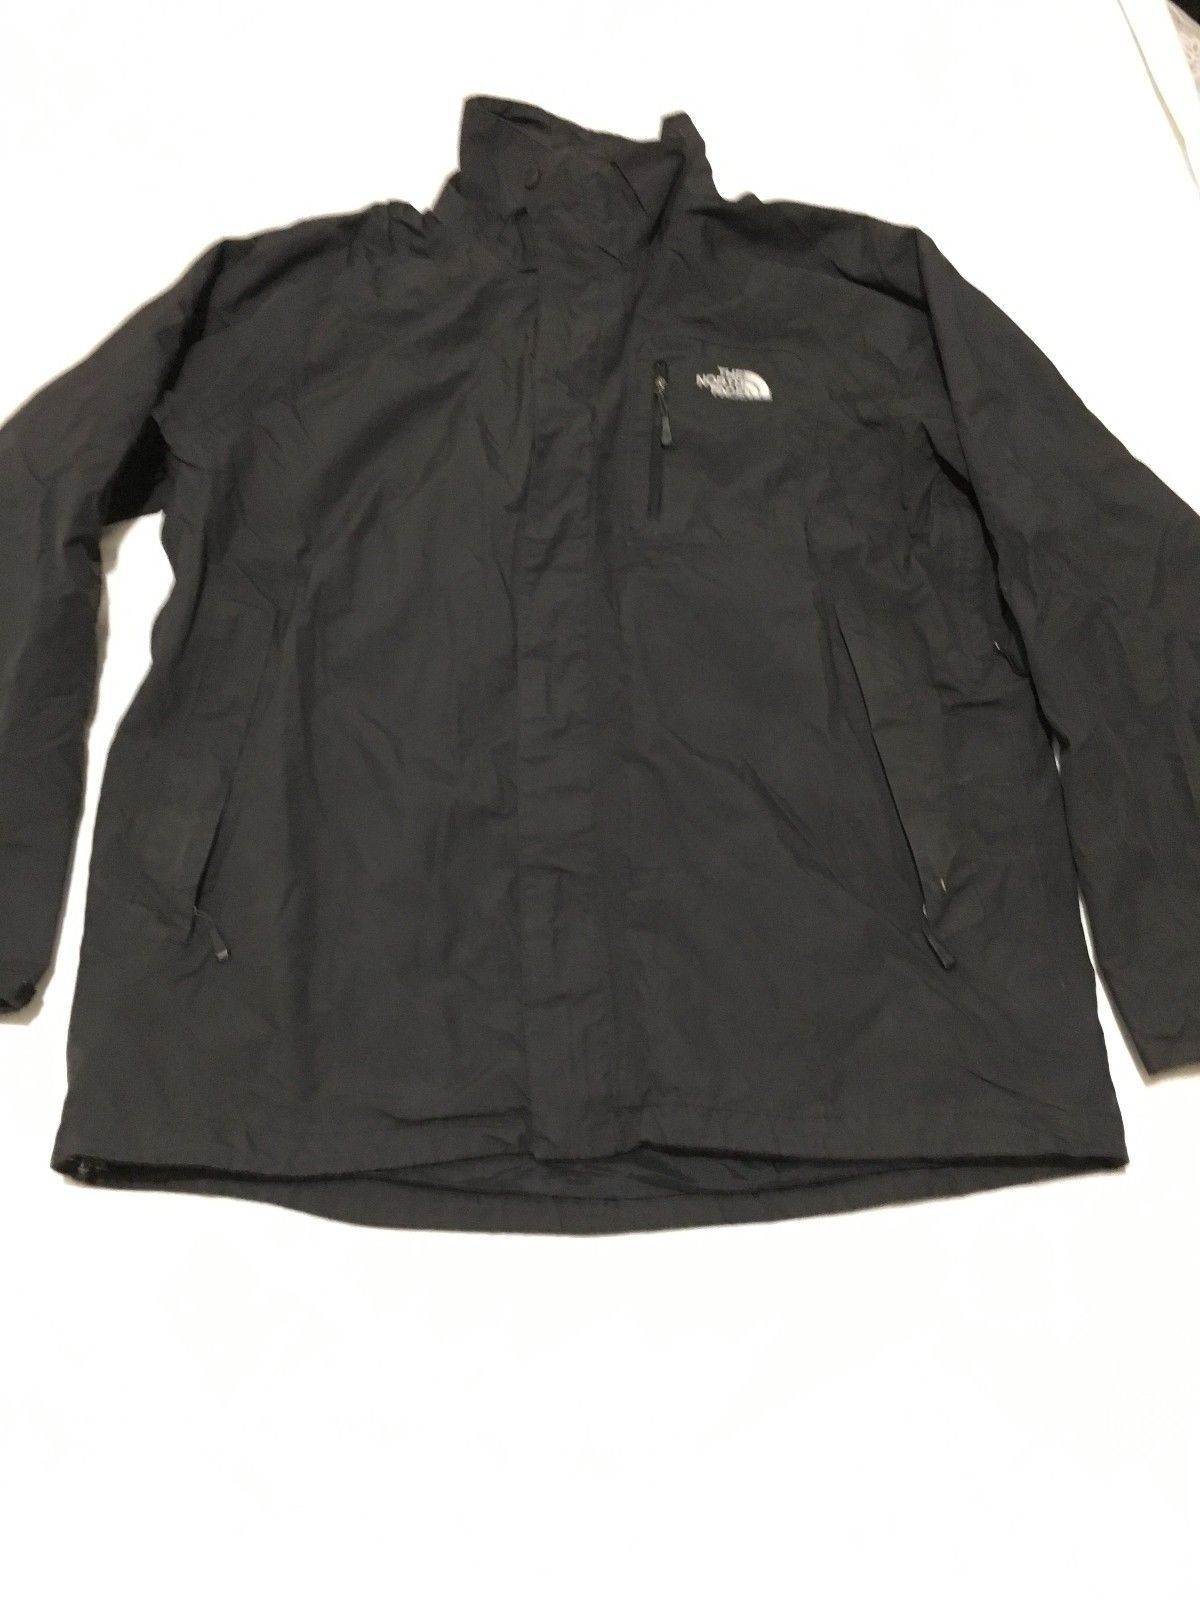 05b6d24fe The North Face Hyvent Windbreaker Jacket and 50 similar items